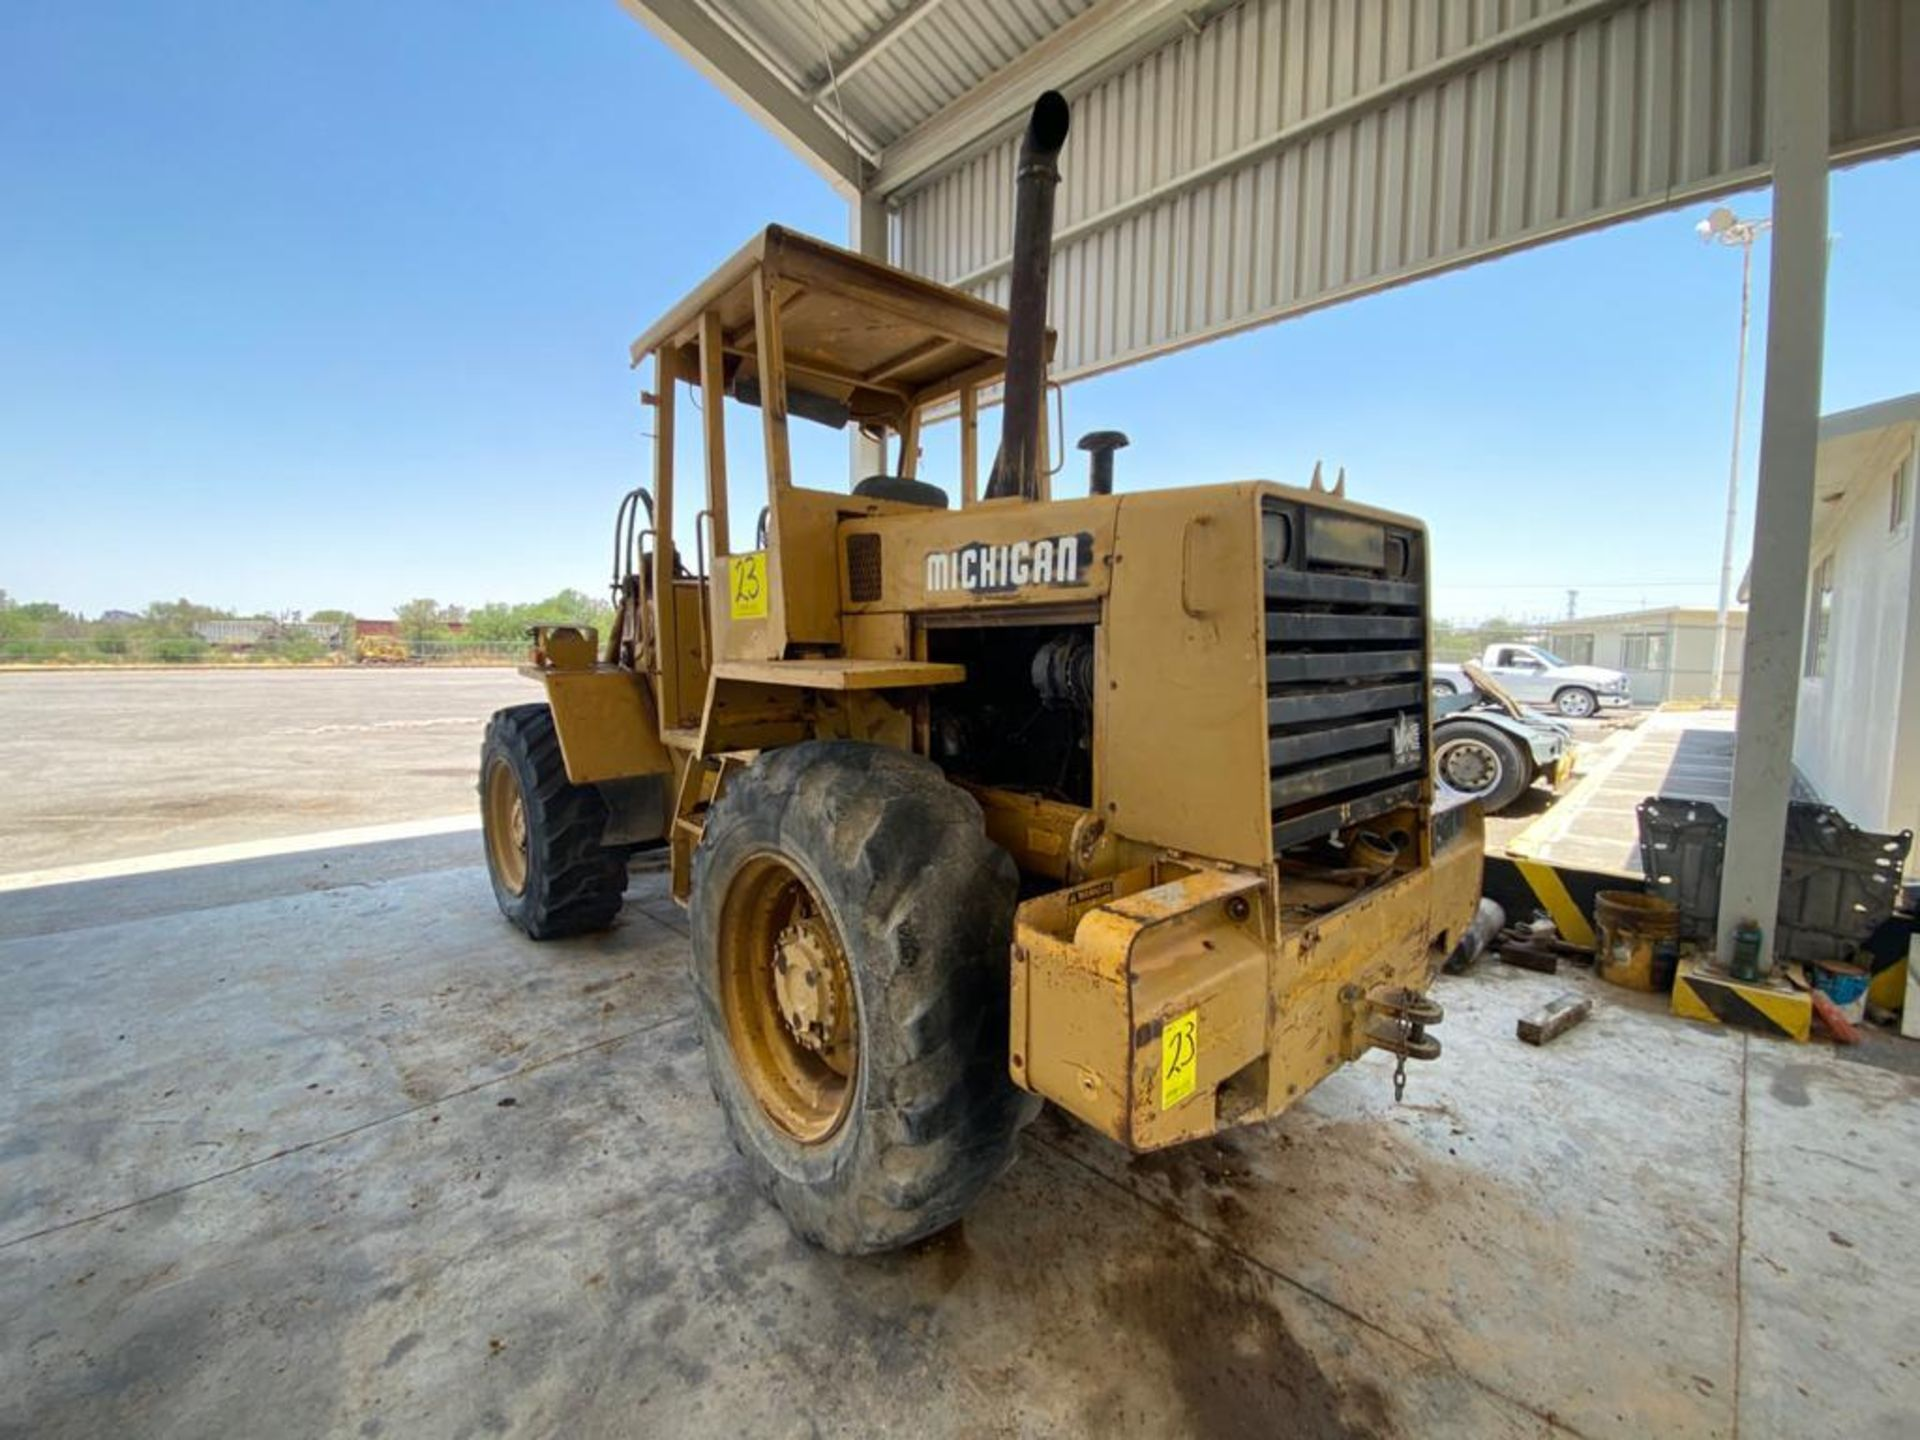 Volvo BM TYPE L 30 Michigan Front Loder, automatic transmission - Image 17 of 53